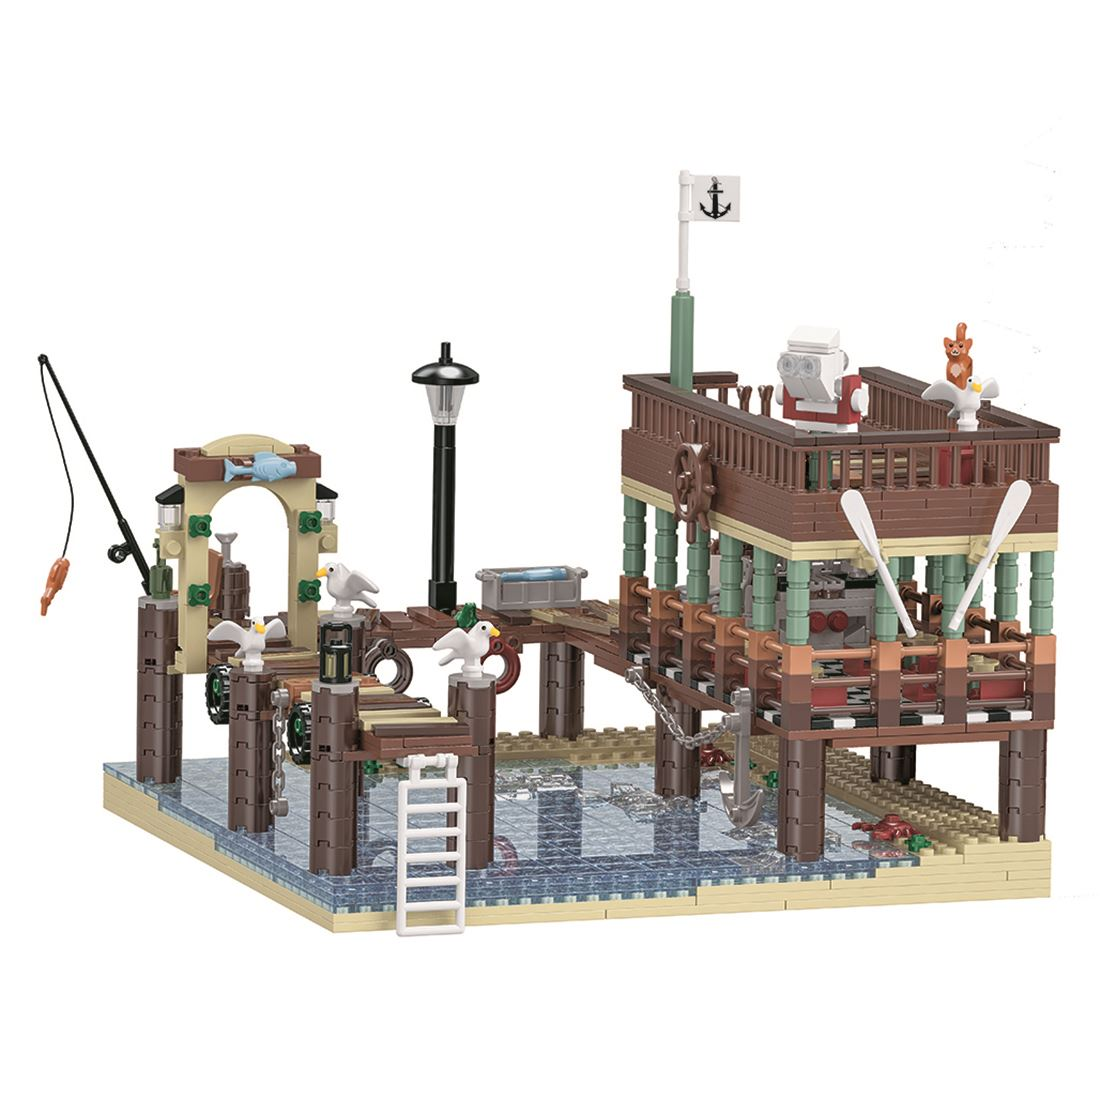 1394Pcs MOC Small Particle 3D Street View Fish House Pier Building Blocks DIY Assembly Building Kit Model Education Toy For Kid